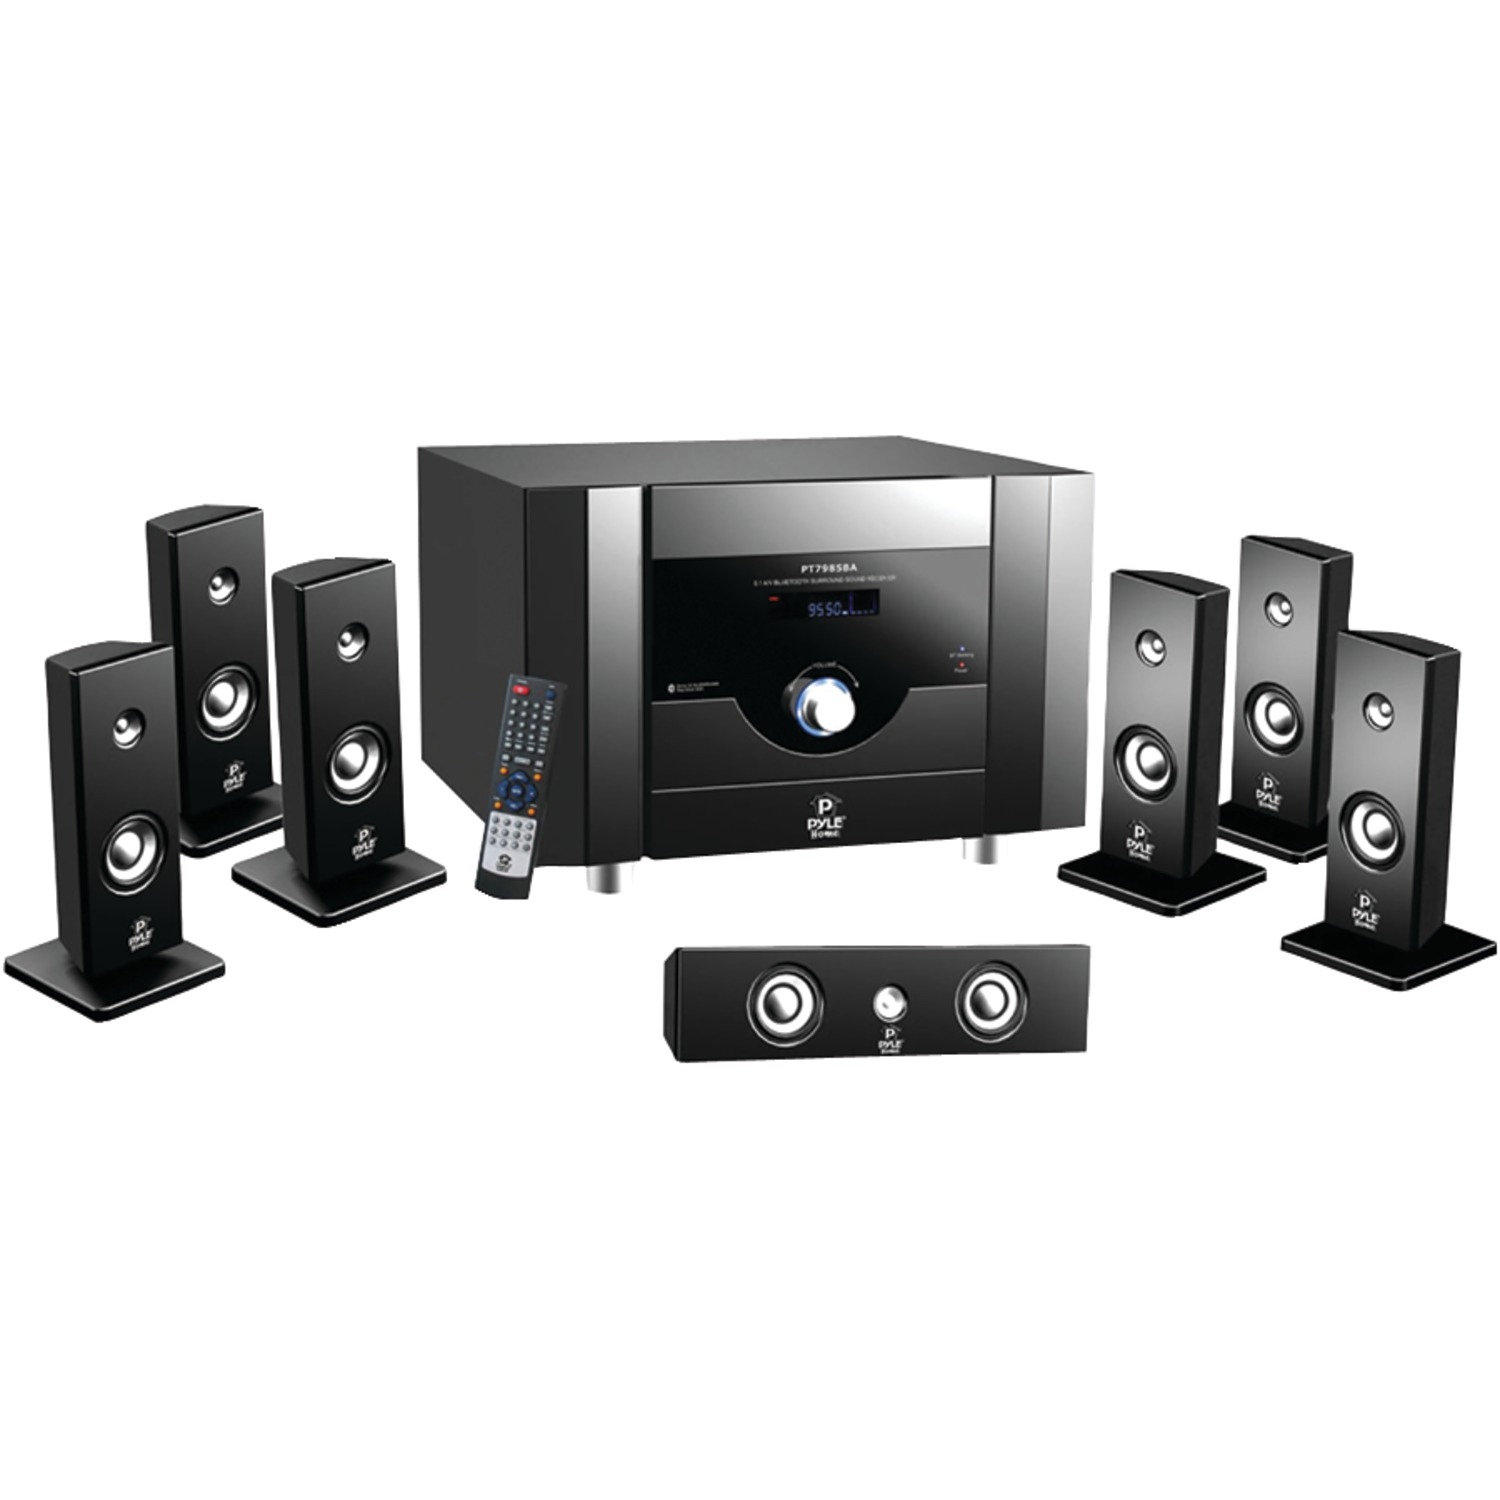 Pyle pt798sba 7 1 channel home theater system with - Home cinema bluetooth ...